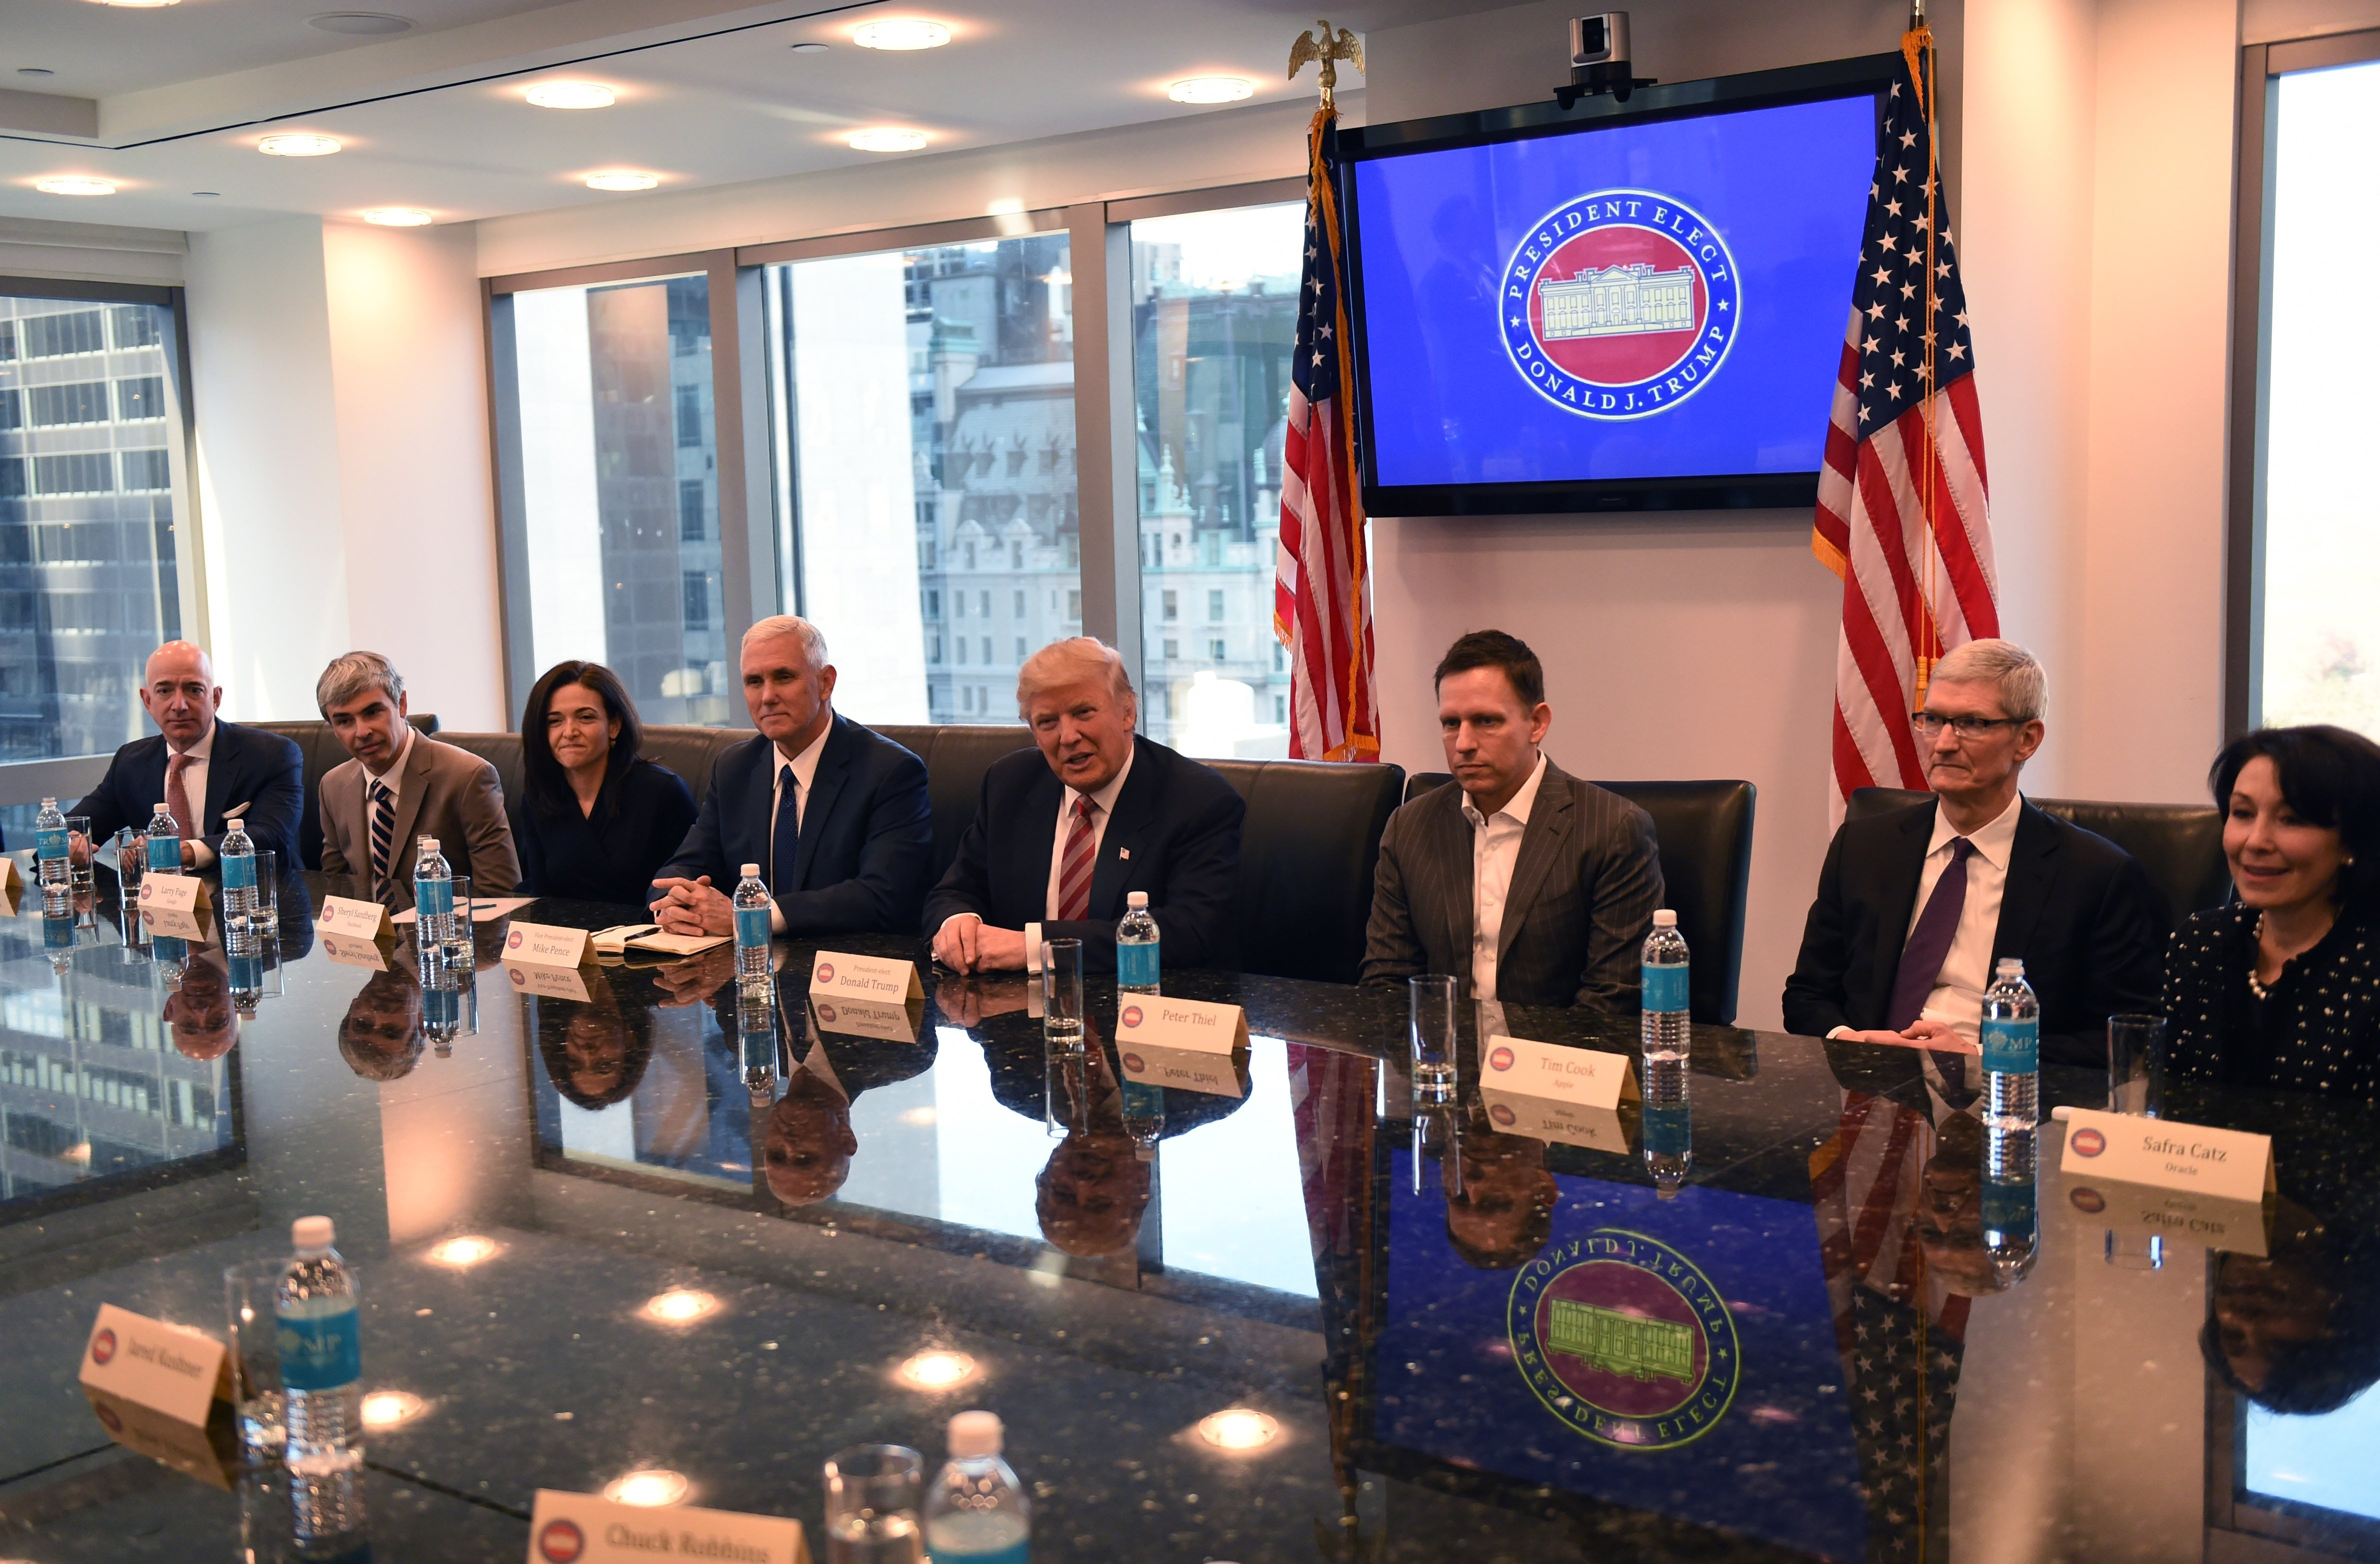 (L-R) Amazon's chief Jeff Bezos, Larry Page of Alphabet, Facebook COO Sheryl Sandberg, Vice President elect Mike Pence, President-elect Donald Trump, Peter Thiel, co-founder and former CEO of PayPal, Tim Cook of Apple and Safra Catz of Oracle attend a meeting at Trump Tower December 14, 2016 in New York. (Photo: TIMOTHY A. CLARY/AFP/Getty Images)